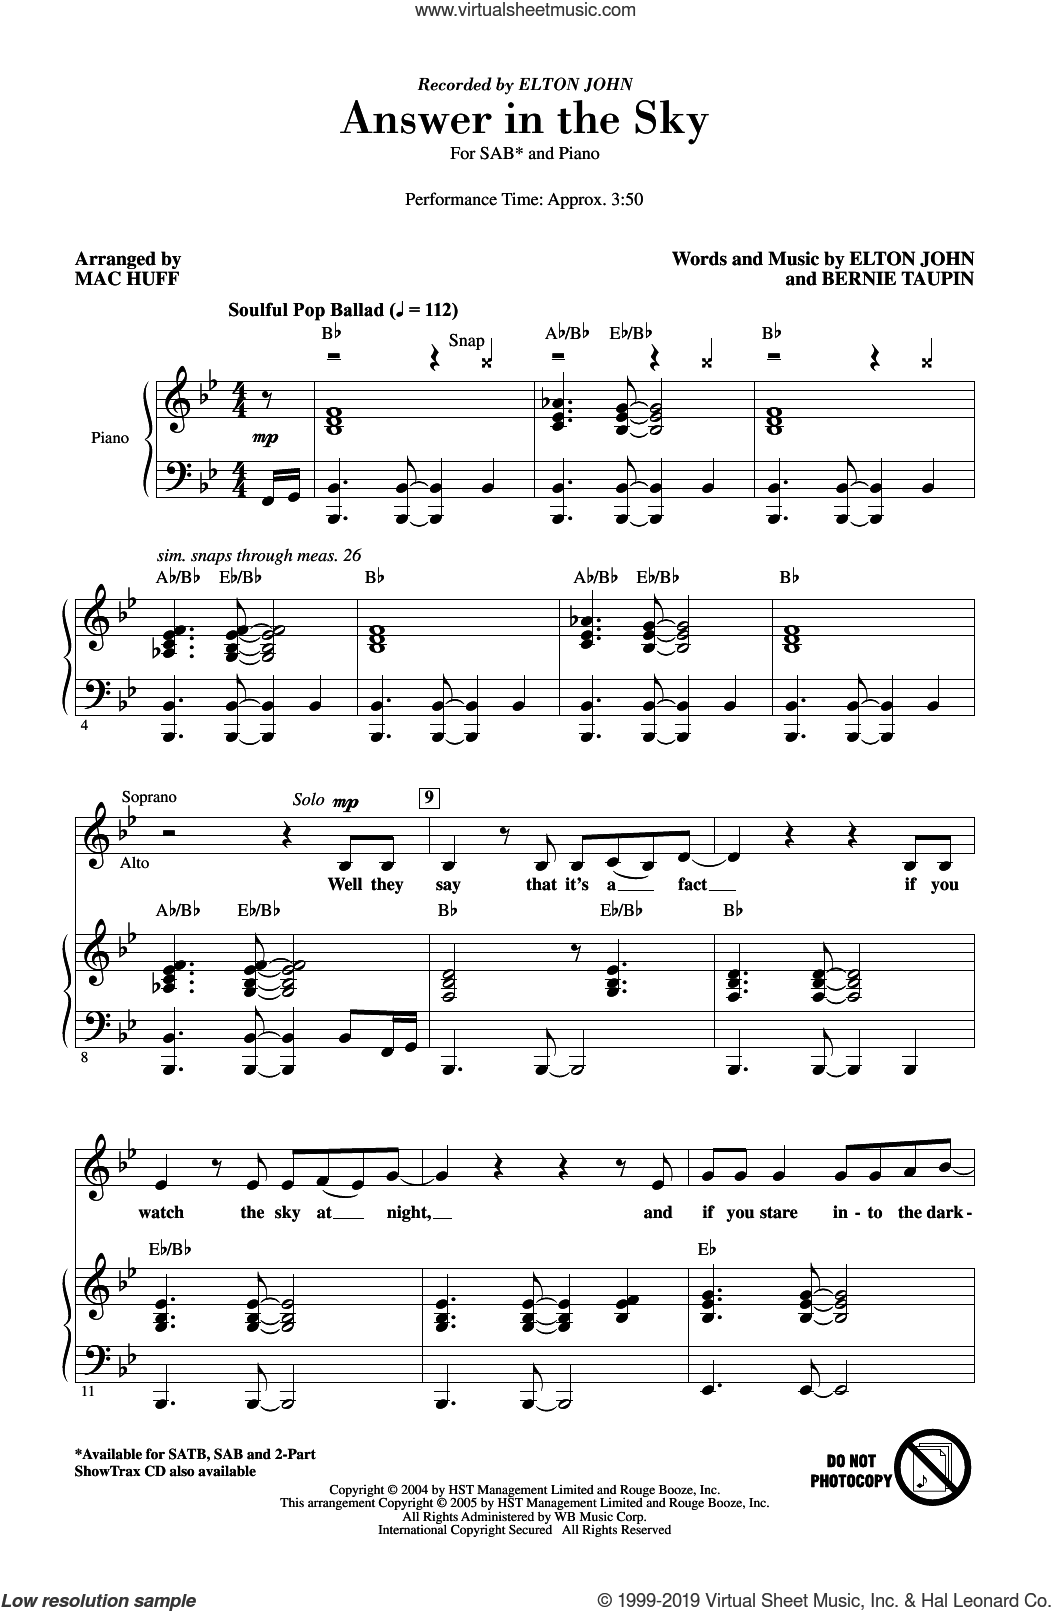 Answer In The Sky (arr. Mac Huff) sheet music for choir (SAB: soprano, alto, bass) by Elton John, Mac Huff and Bernie Taupin, intermediate skill level